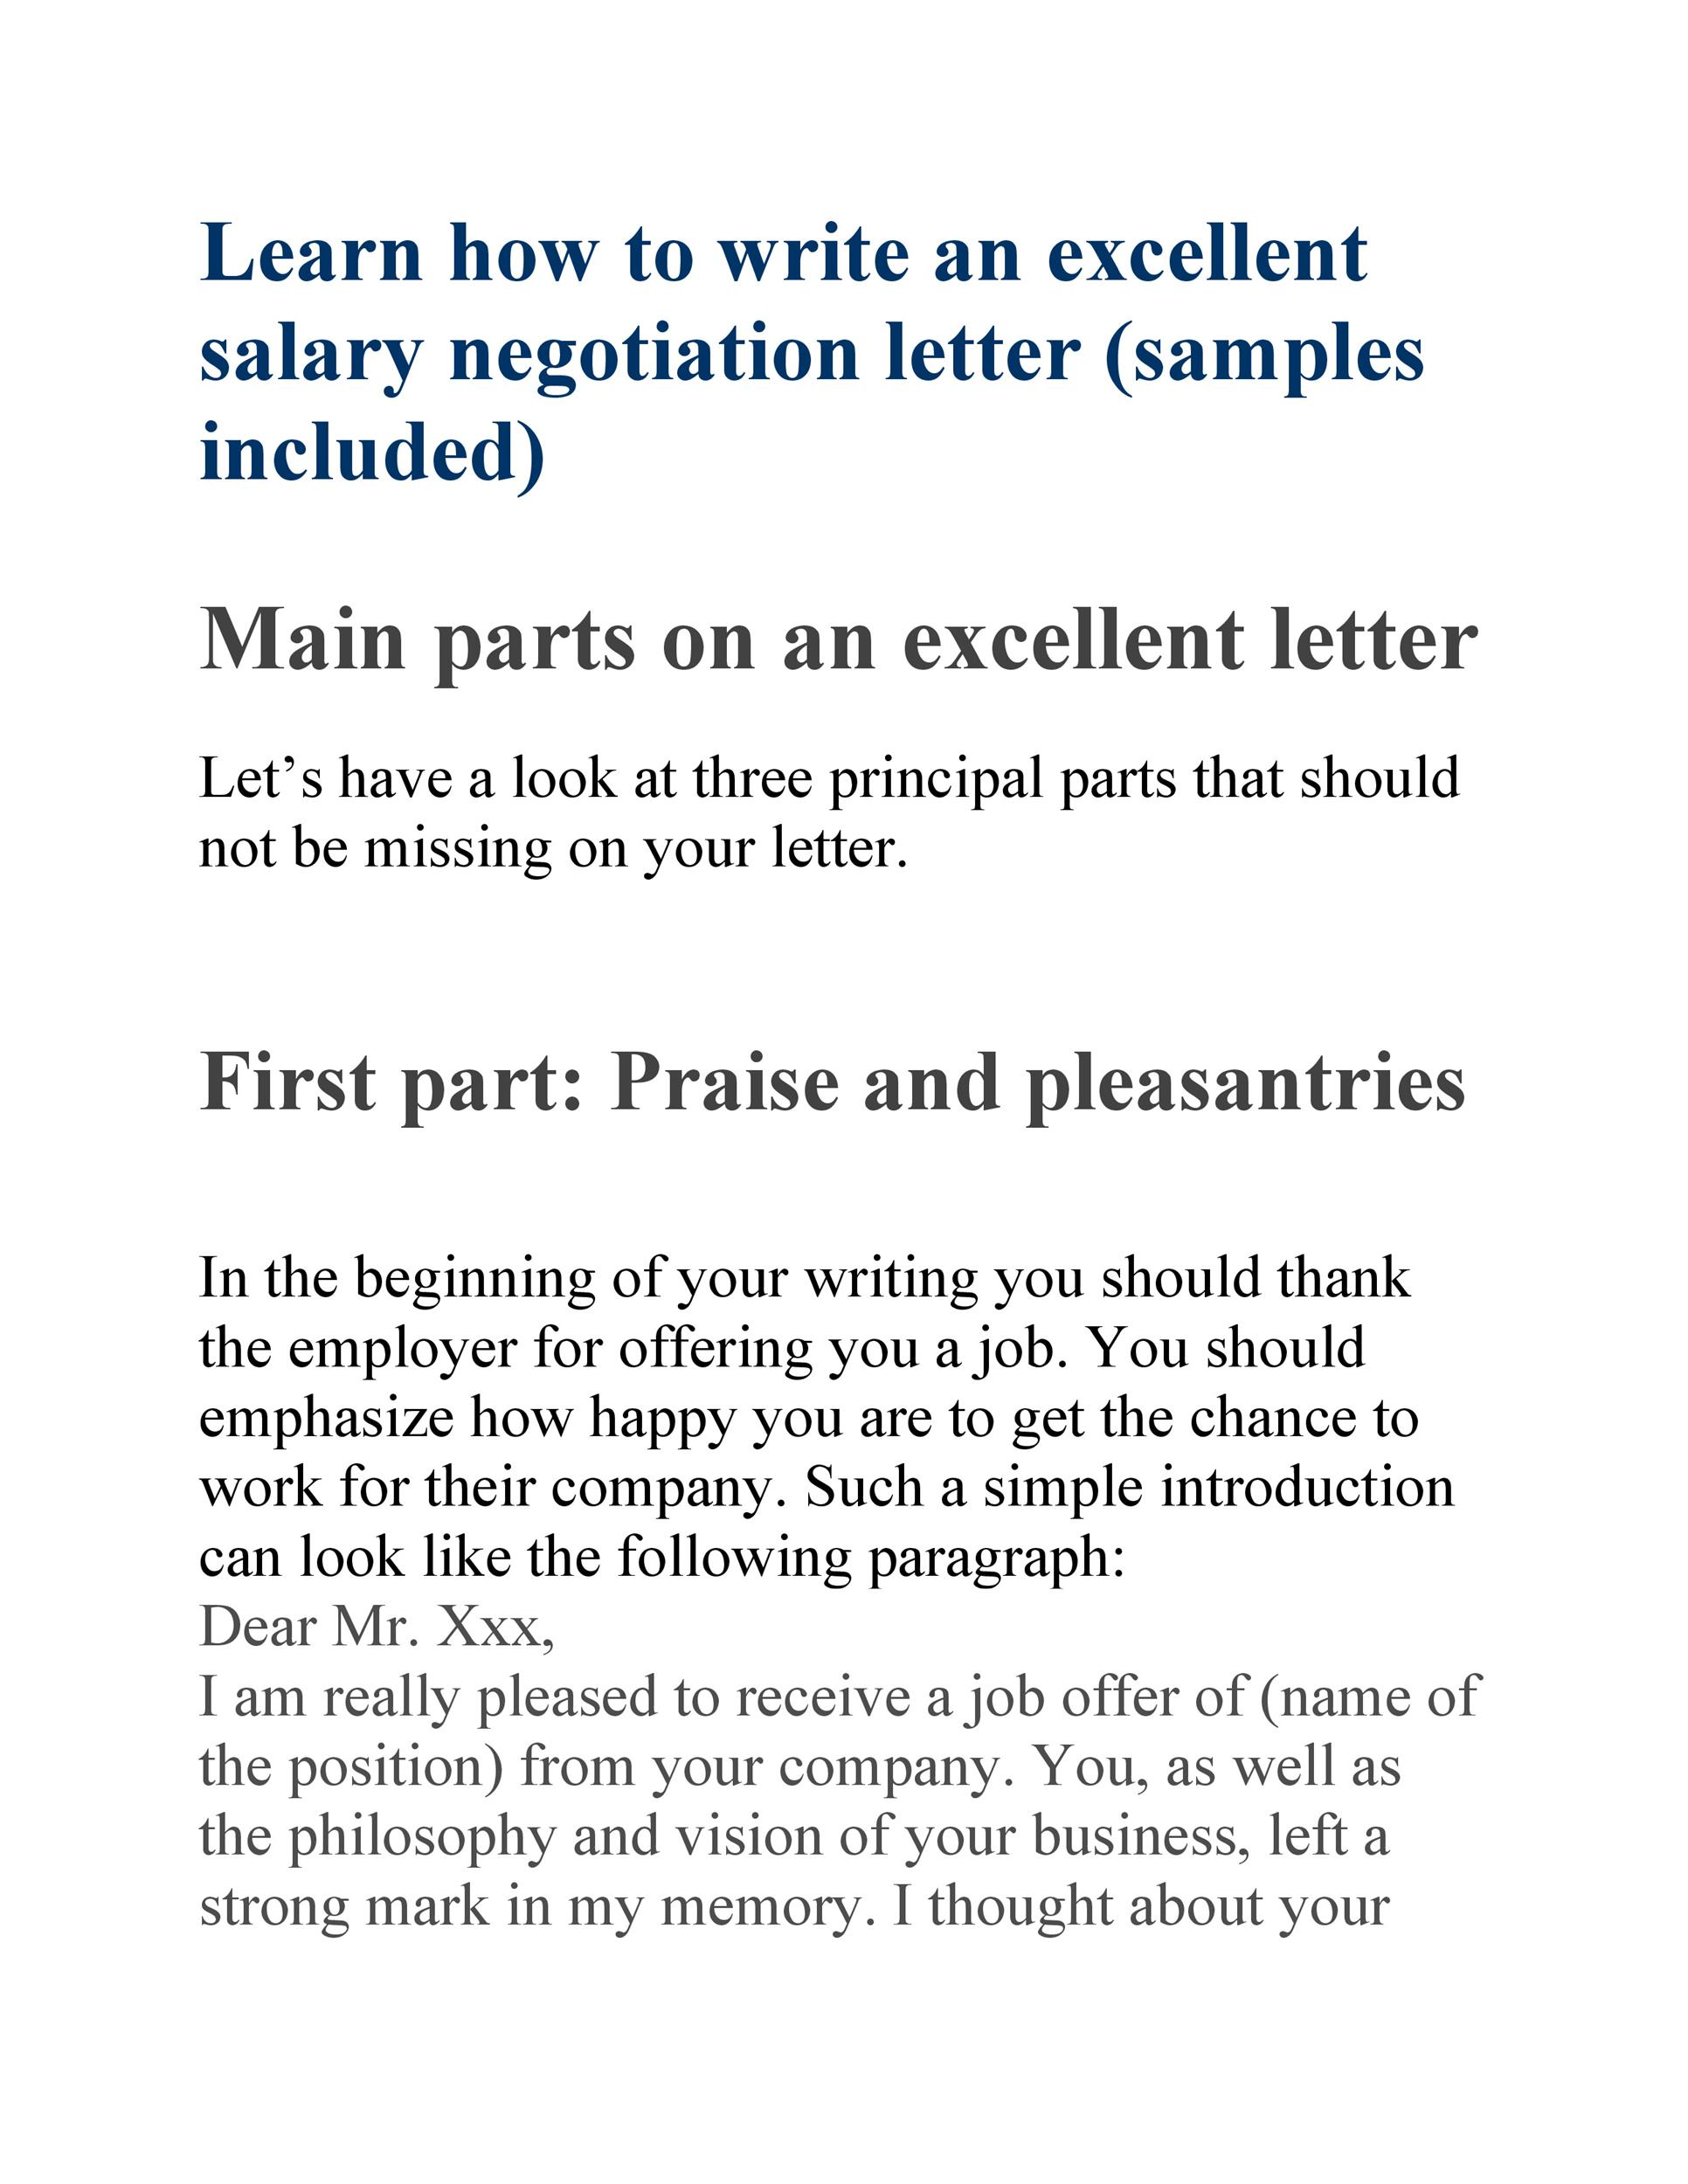 Free salary negotiation letter 17